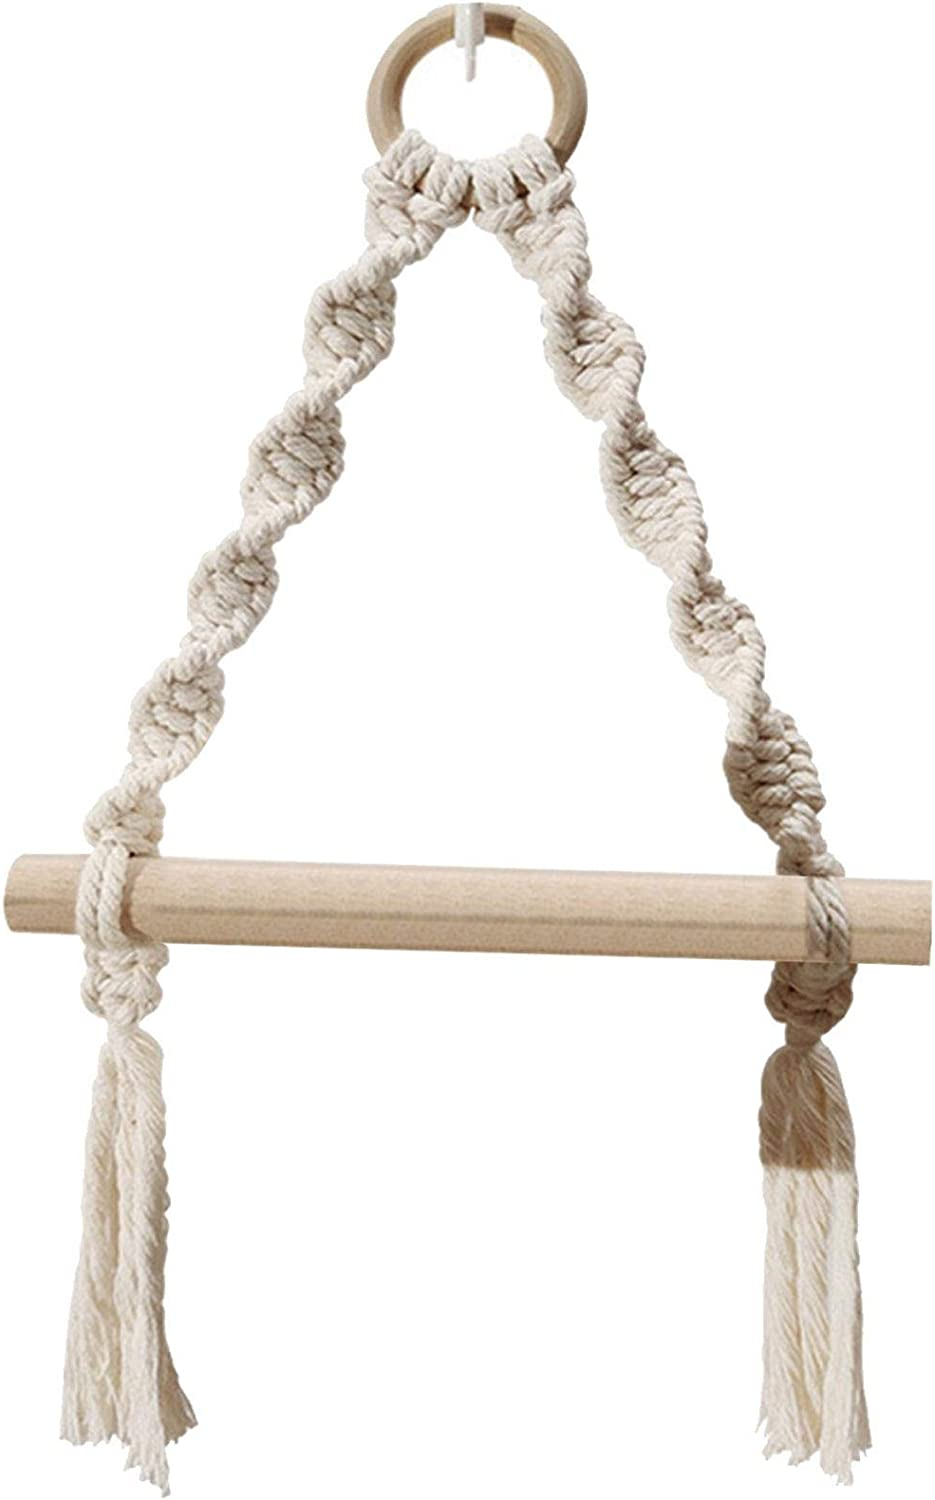 goforwealth Bohemian Toilet Roll Holder Handwoven Rope Hemp Toil Purchase Be super welcome